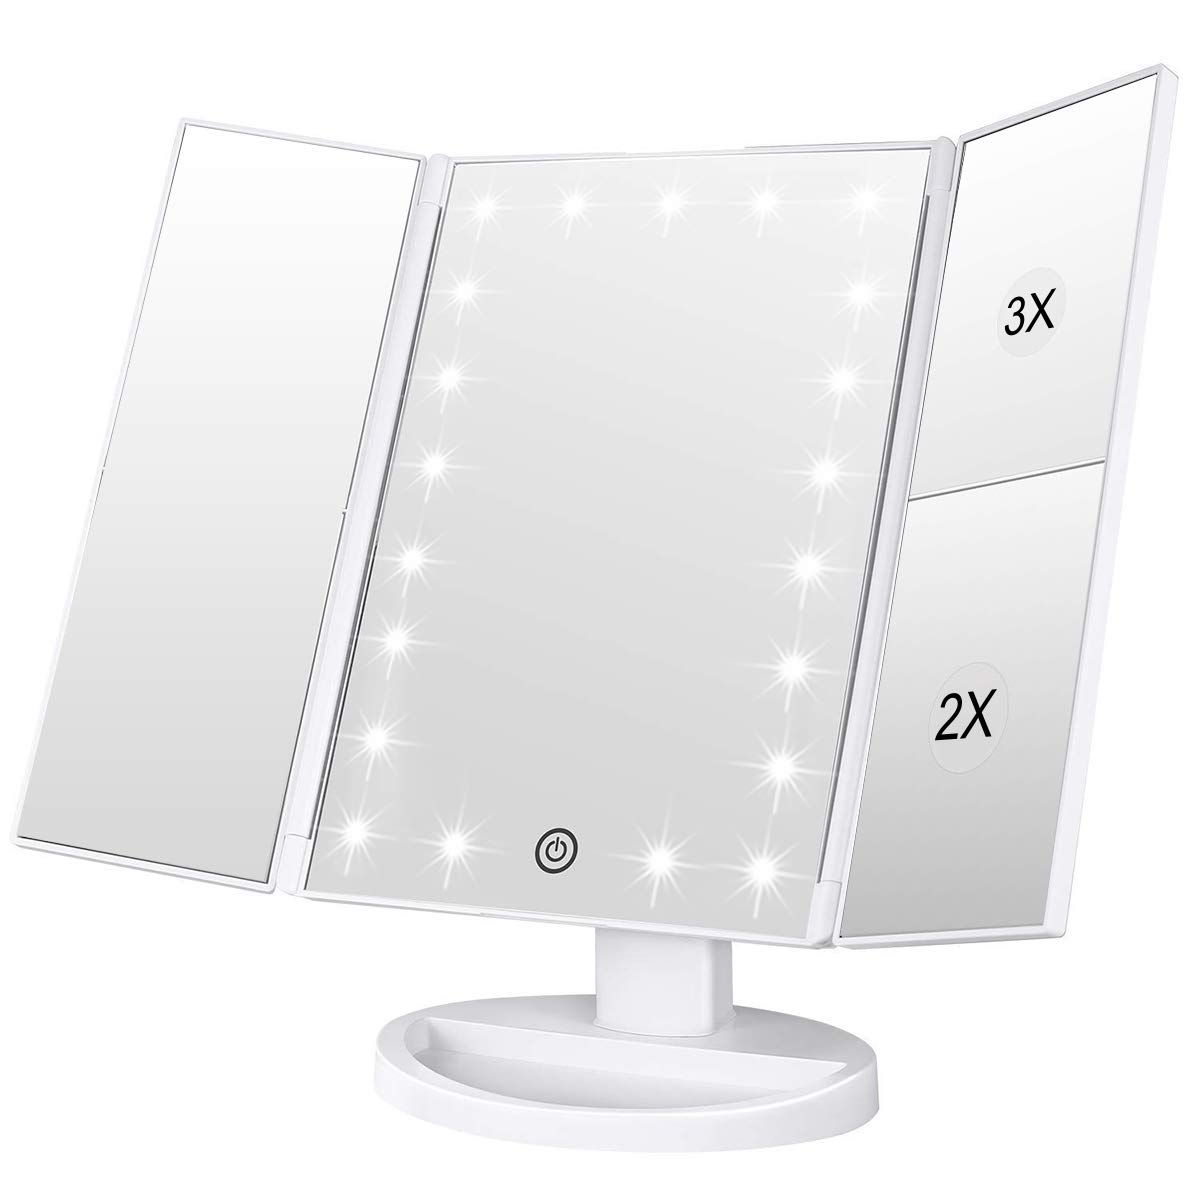 Amazon Com Weily Lighted Makeup Mirror With 21 Led Lights Trifold Vanity Mirror With 3x 2x 1x Magnification Touch Screen Dual Power Supply 180 Degree Rotation Portable Mirrors For Travel White Beauty